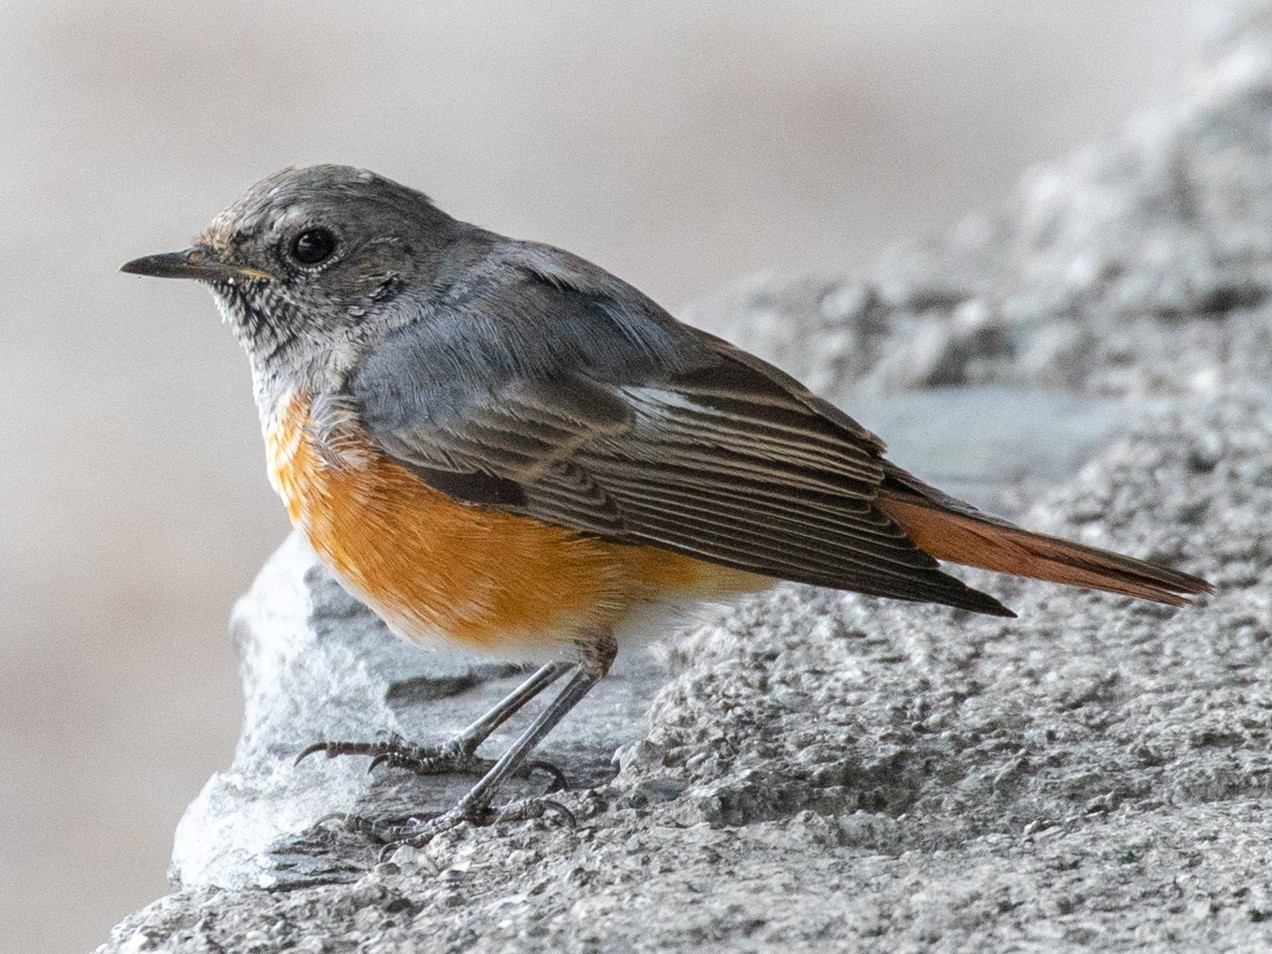 Common Redstart - Lutz Duerselen